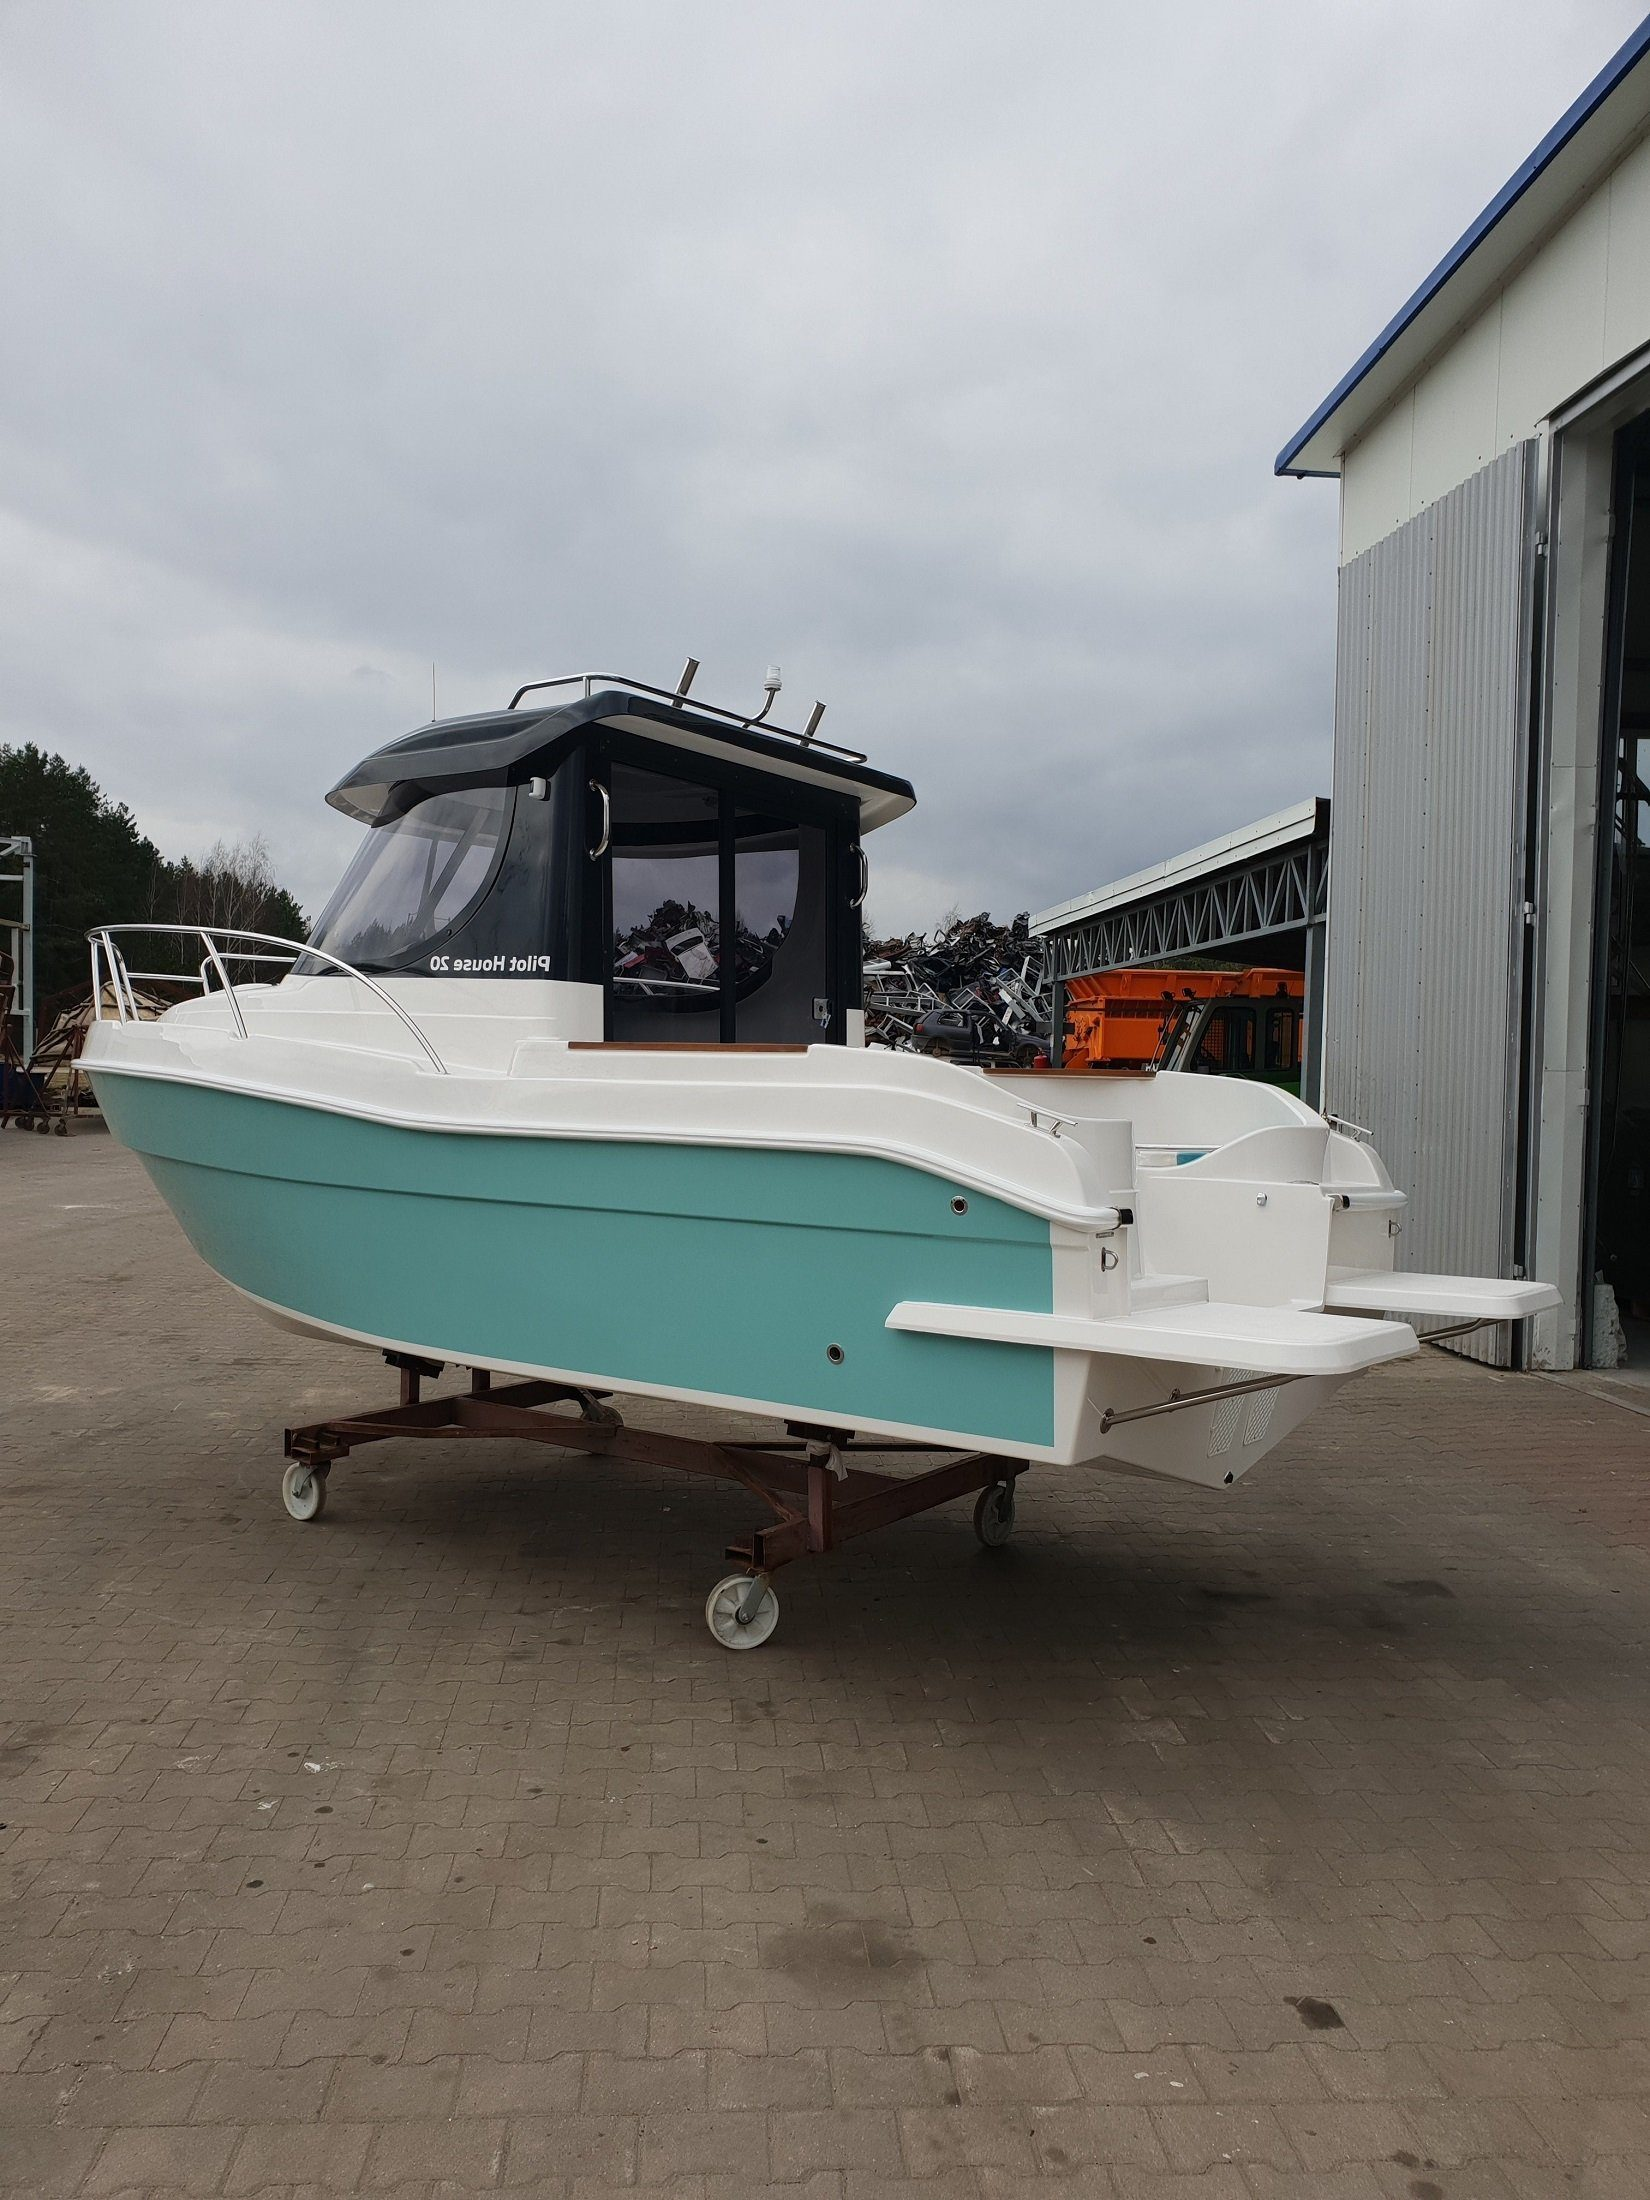 pilothouse 580 planing hull powerboat